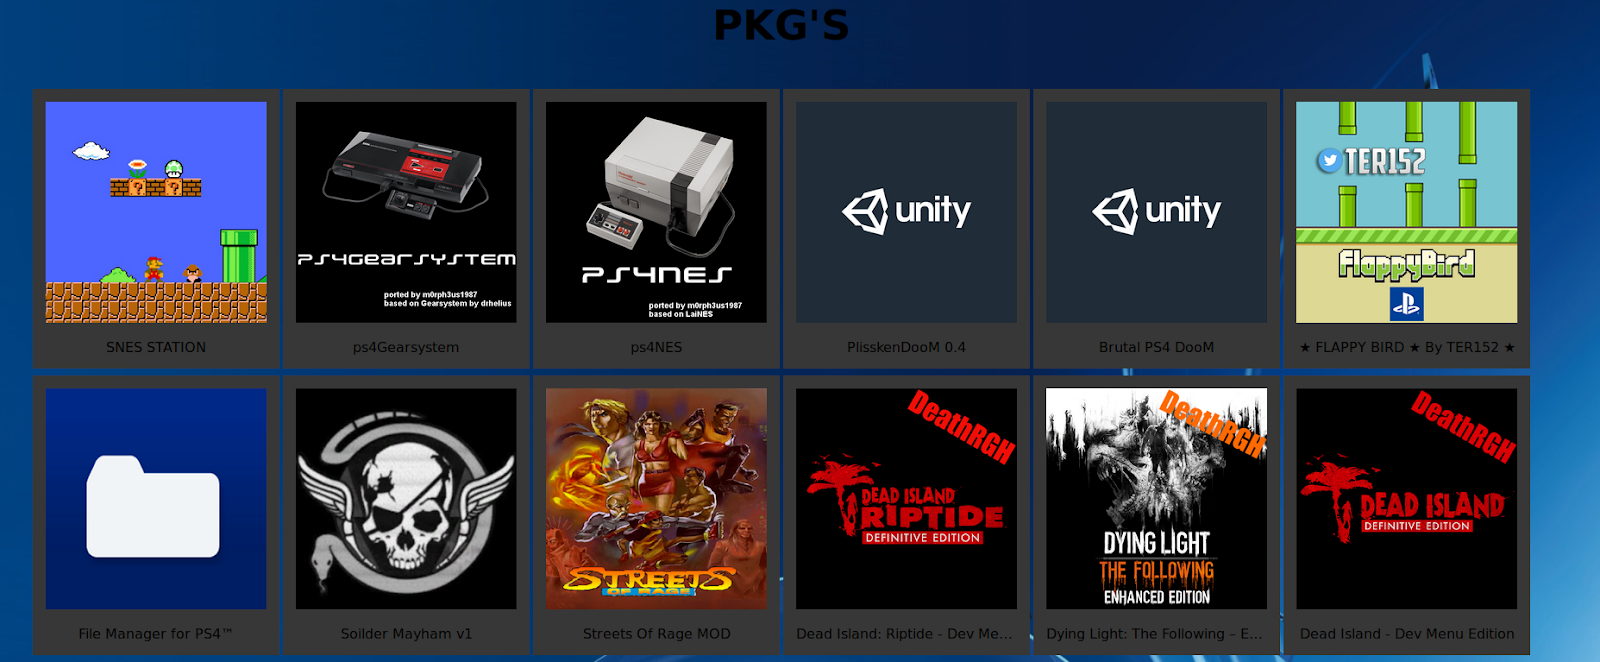 PS4 PKG Homebrew Package Store | PS4 games mods tools